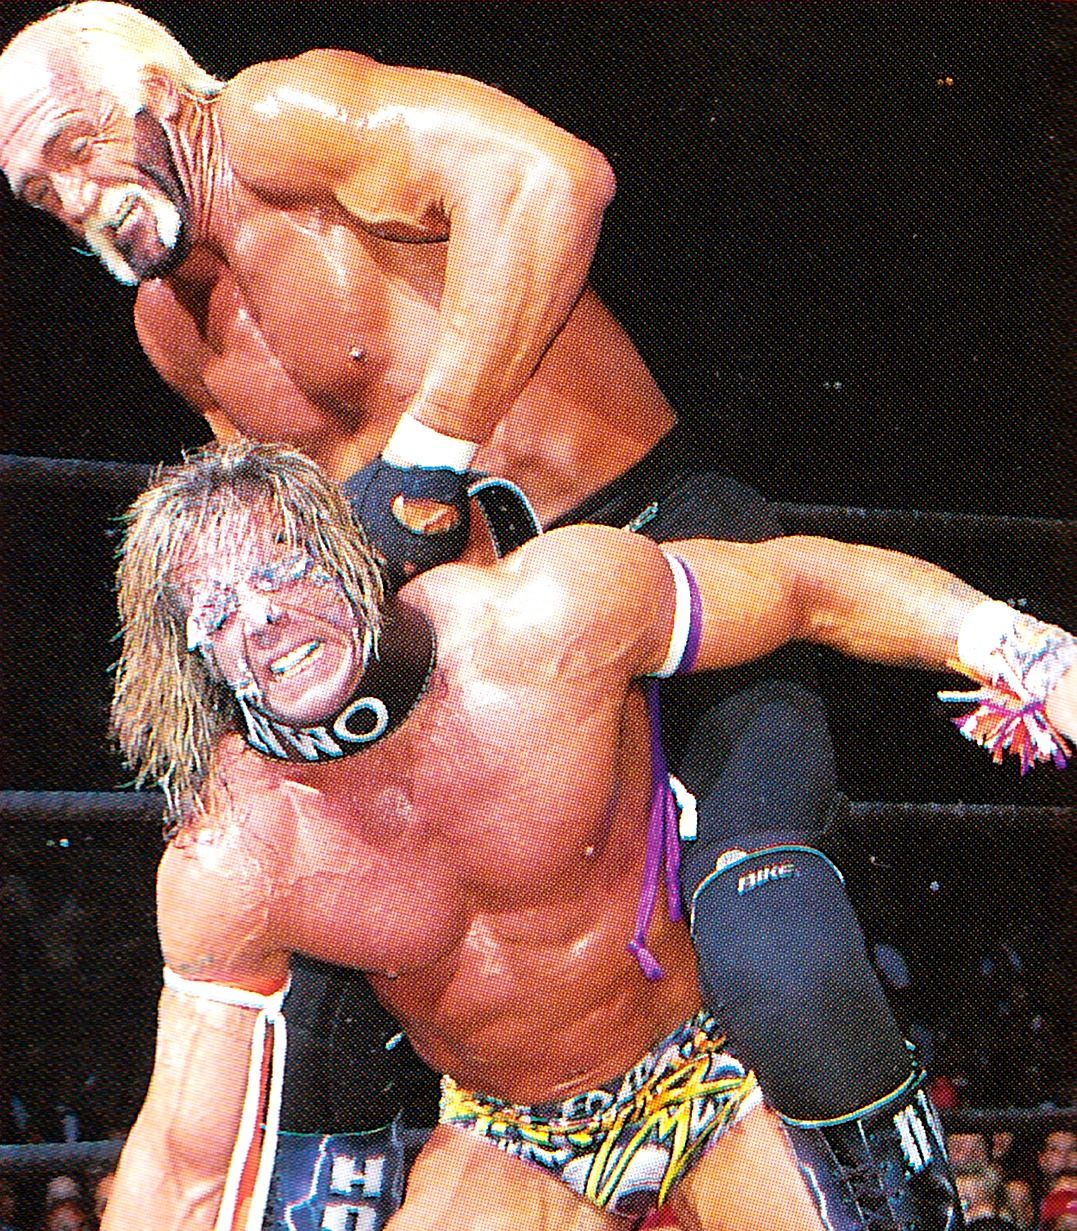 Hulk Hogan and Ultimate Warrior face off at WCW Halloween Havoc 1998. It turned out to be an unmemorable affair, unlike their clash at WrestleMania 6.